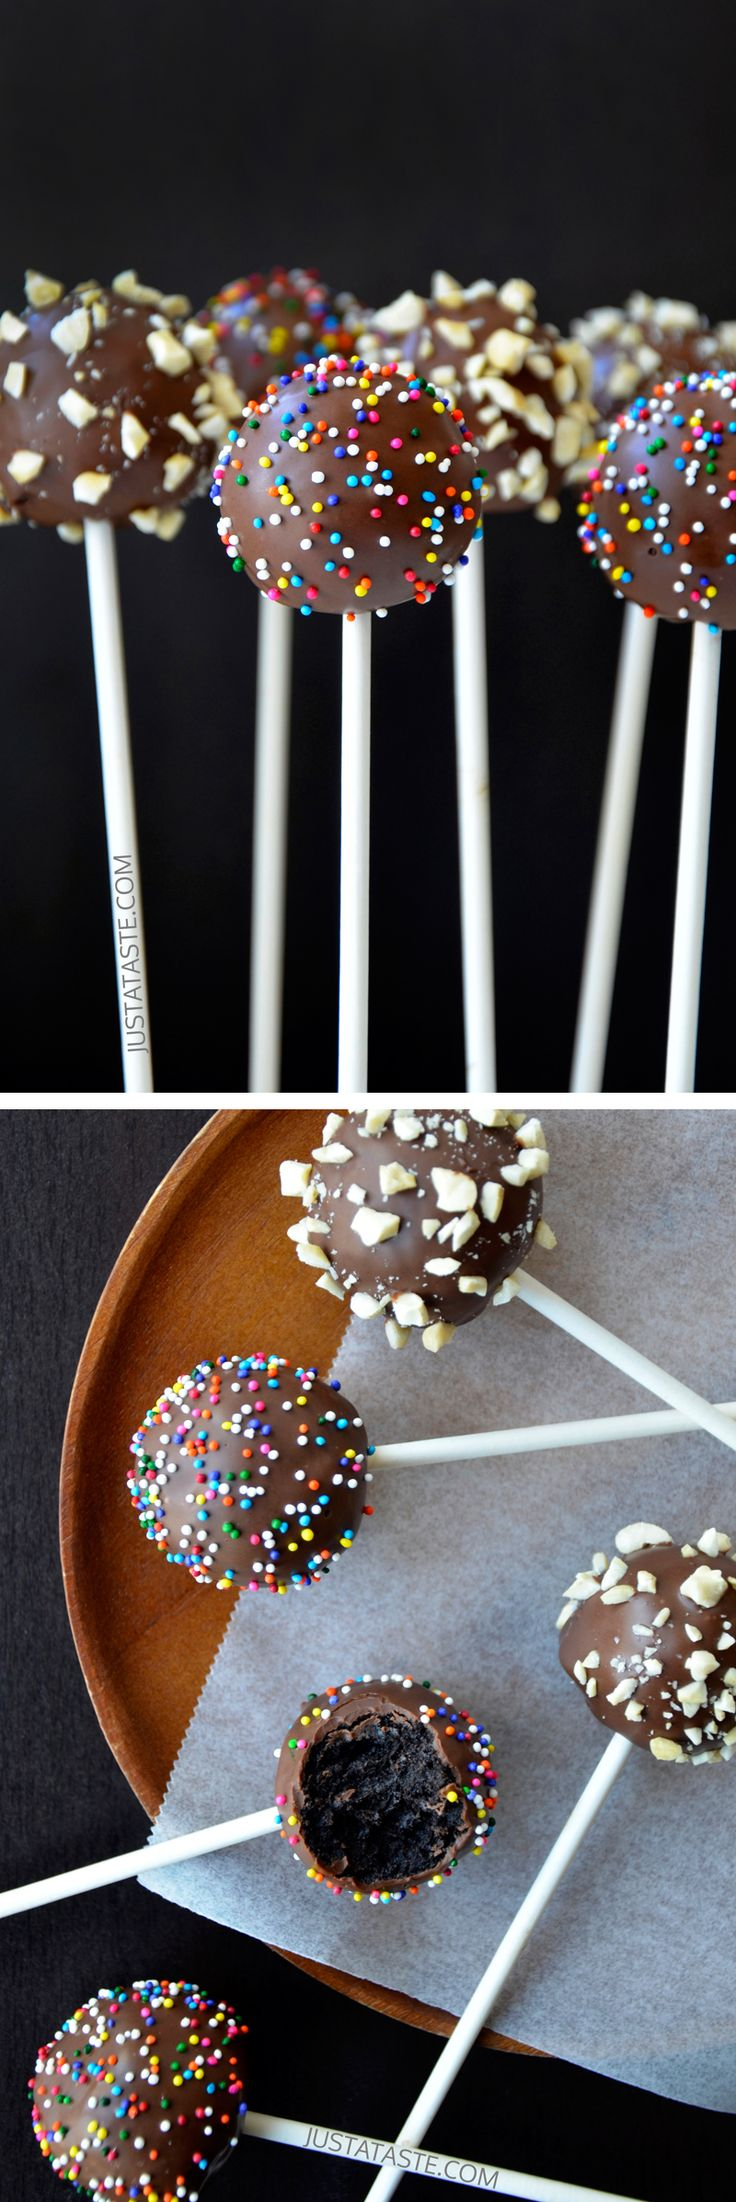 No-Bake Chocolate Cookie Pops #recipe